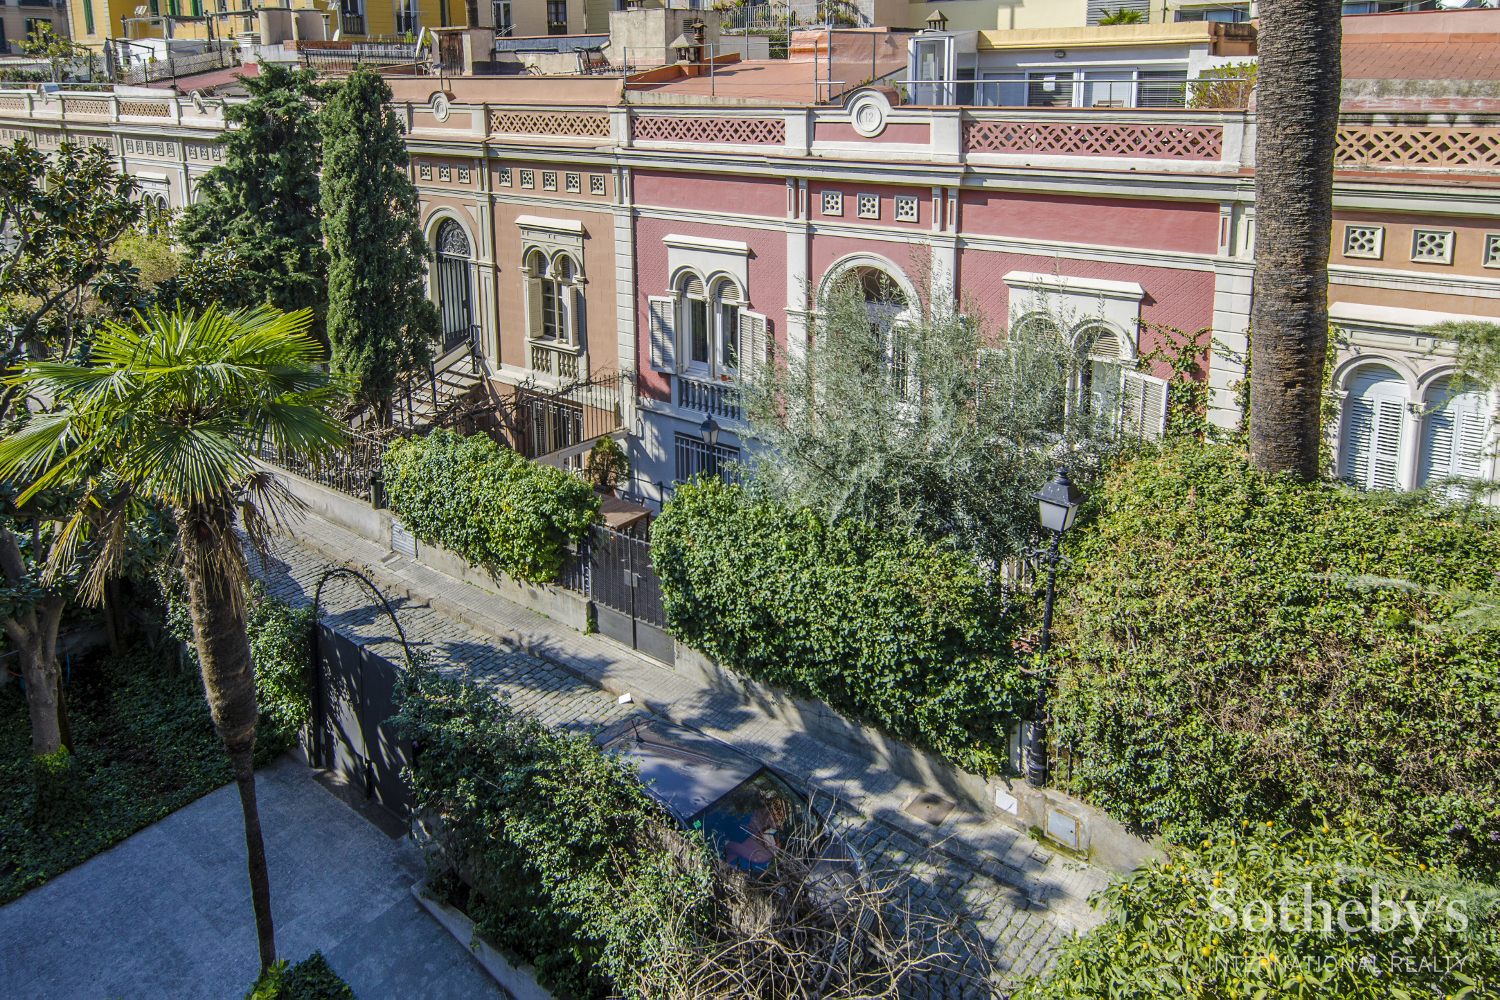 Частный односемейный дом для того Продажа на Magnificent house with private garden in an exclusive passage in L'Eixample ... Eixample, Barcelona City, Barcelona 08007 Испания